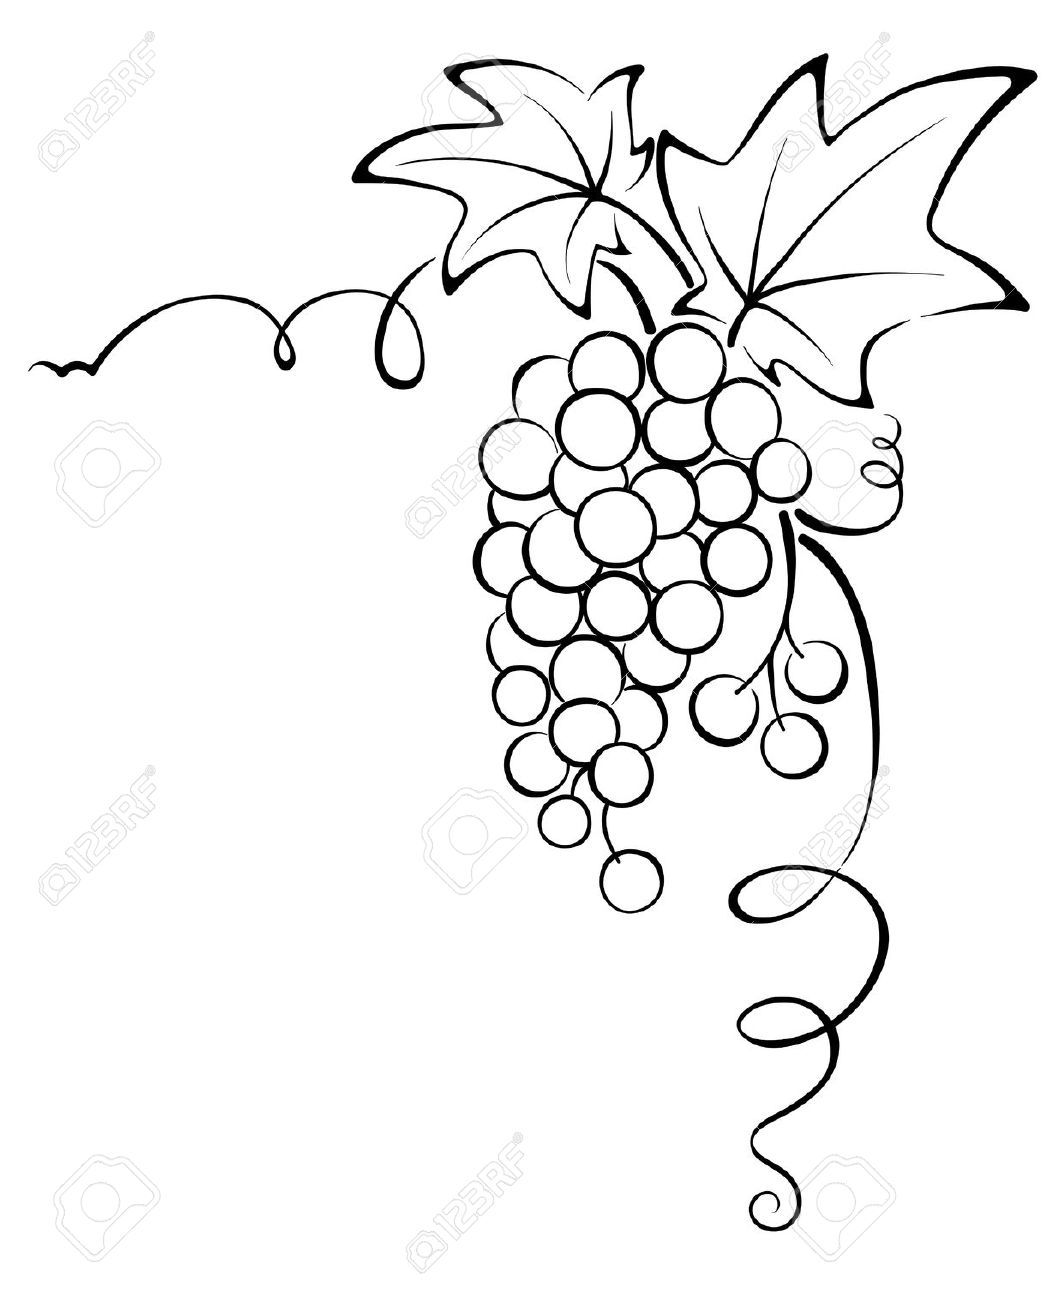 Agrape vines q clipart black and white png free grape vine design - Google Search | Tile Abstract & Mosaic | Vine ... png free